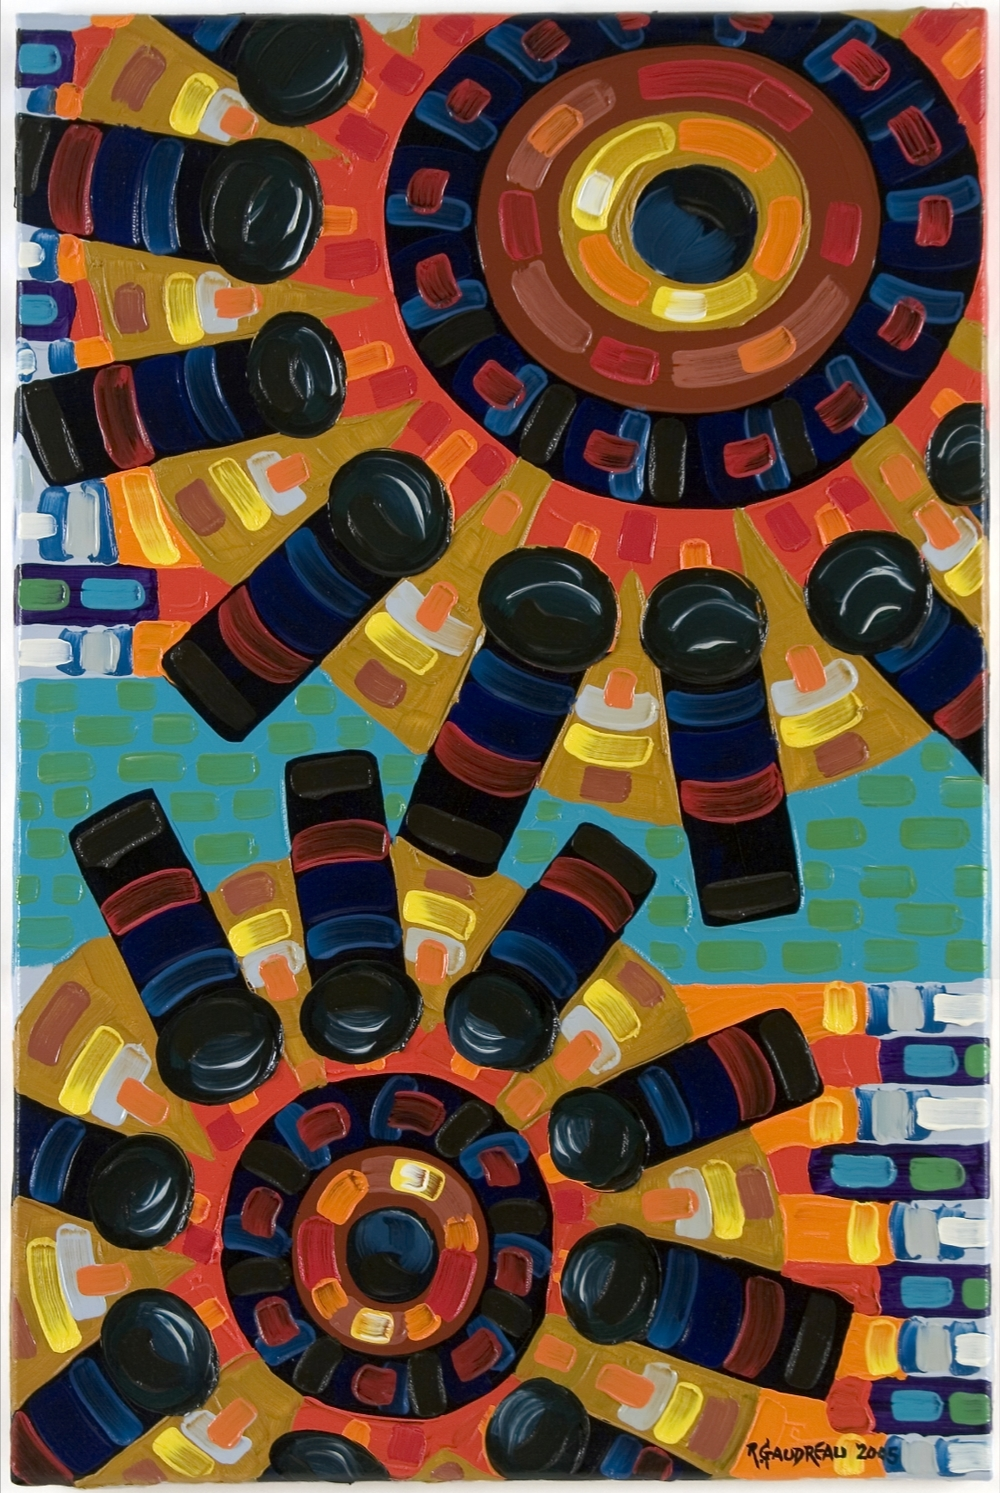 Gears 2005 oil on linen 36 x 24 inches